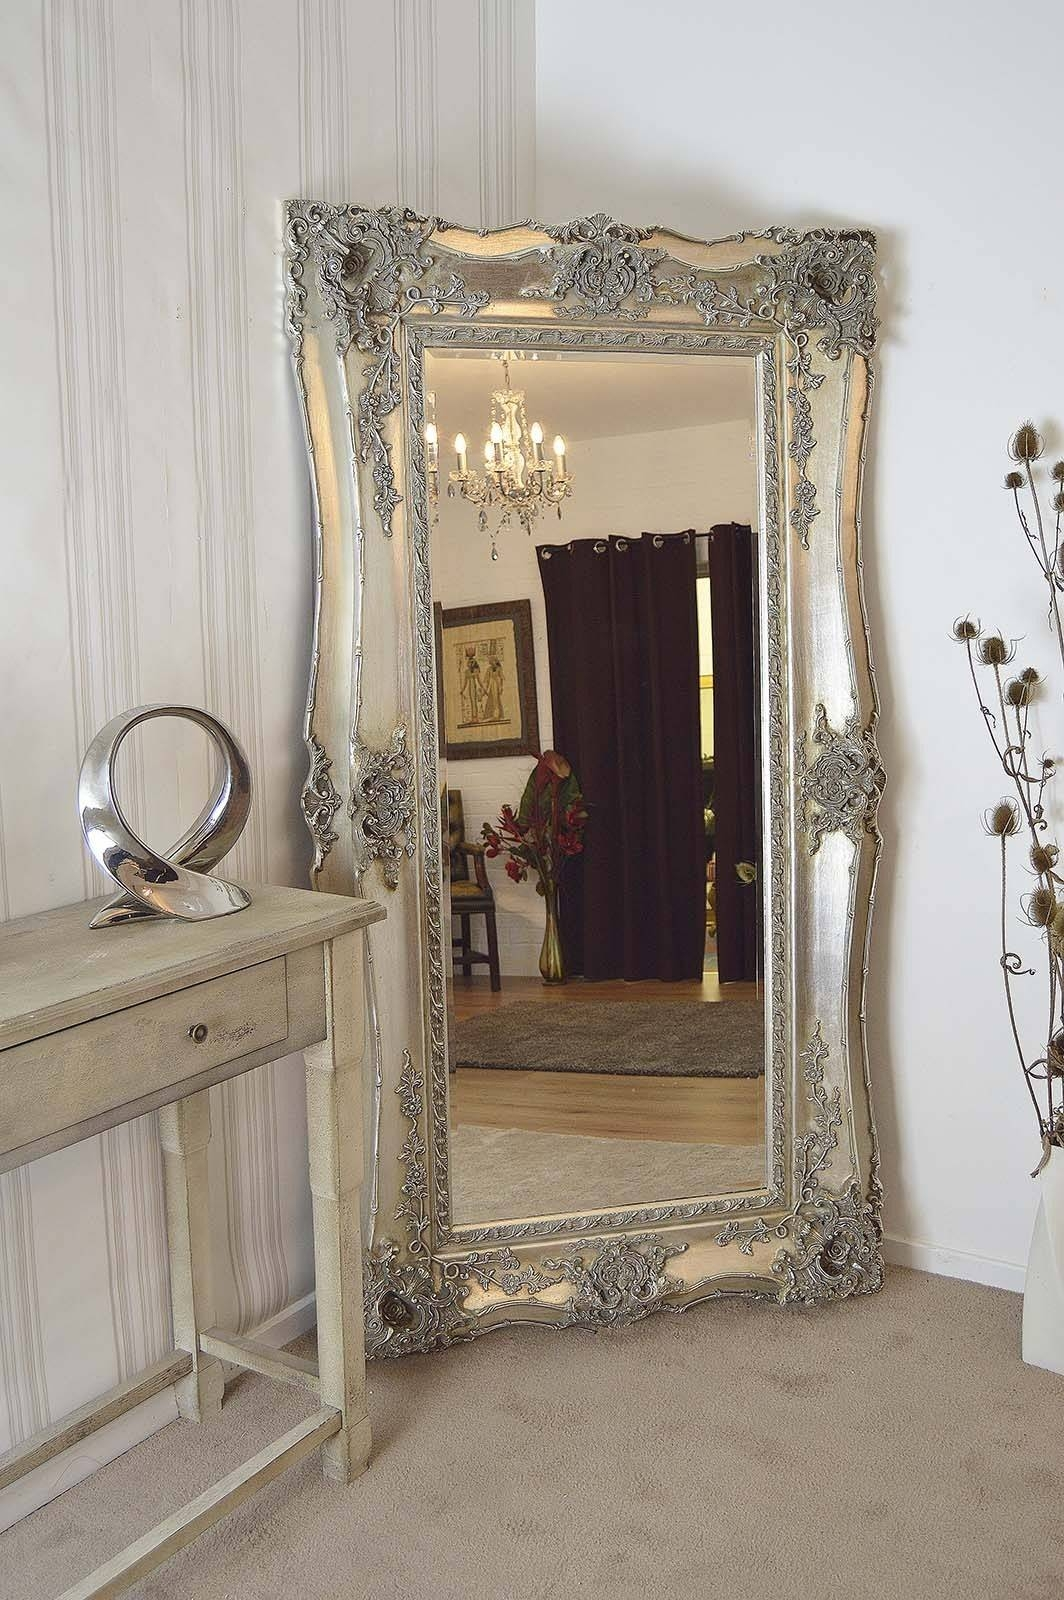 Homeware: Oval Full Length Standing Mirror | Large Floor Mirrors throughout Large Floor Mirrors (Image 14 of 20)